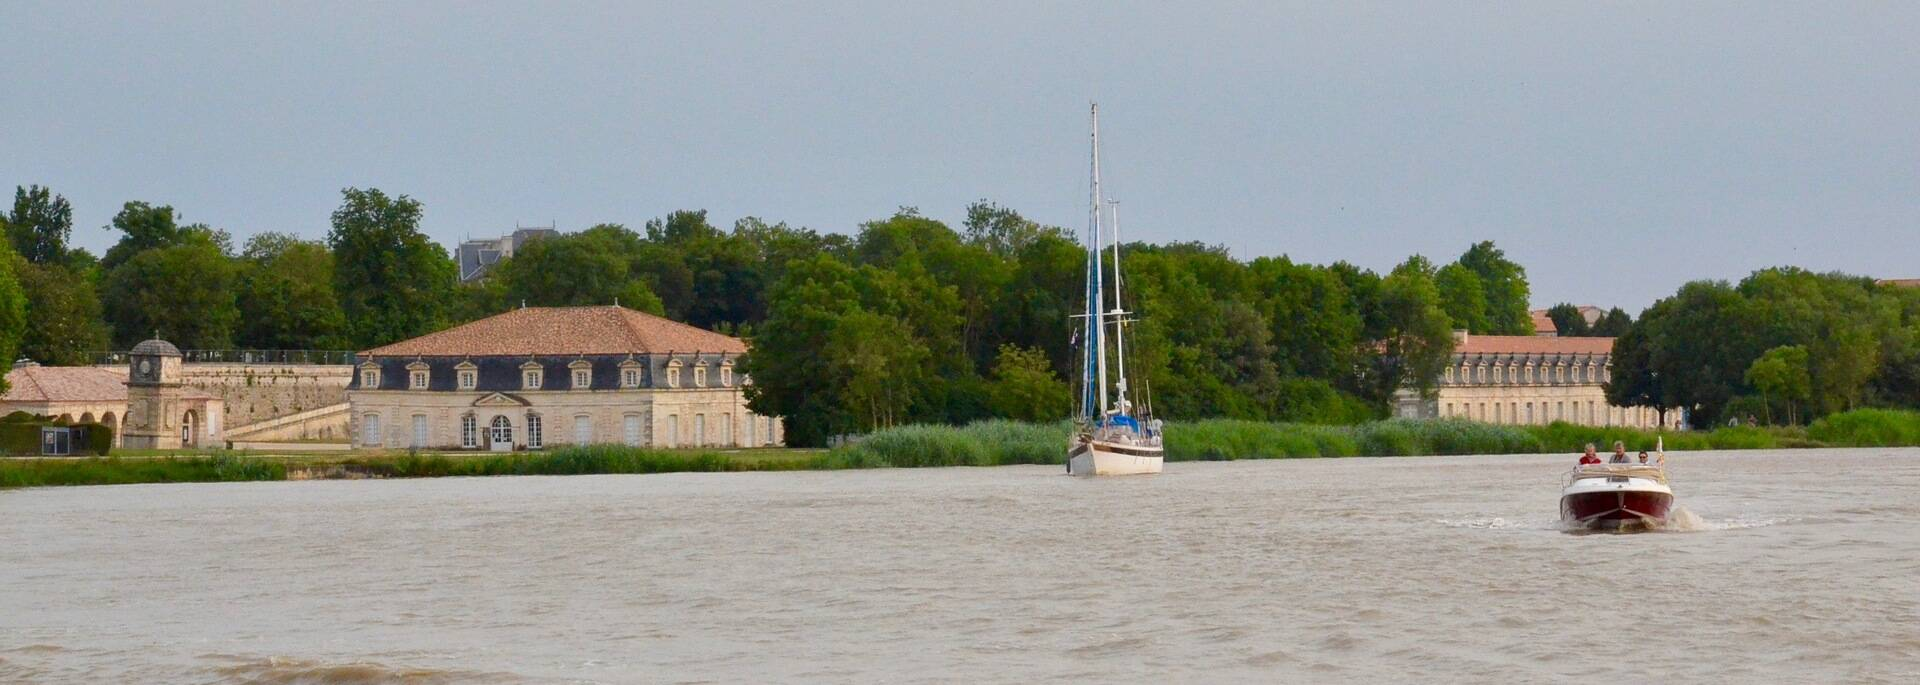 The Corderie Royale next to the Charente river - © Samuel Courtois